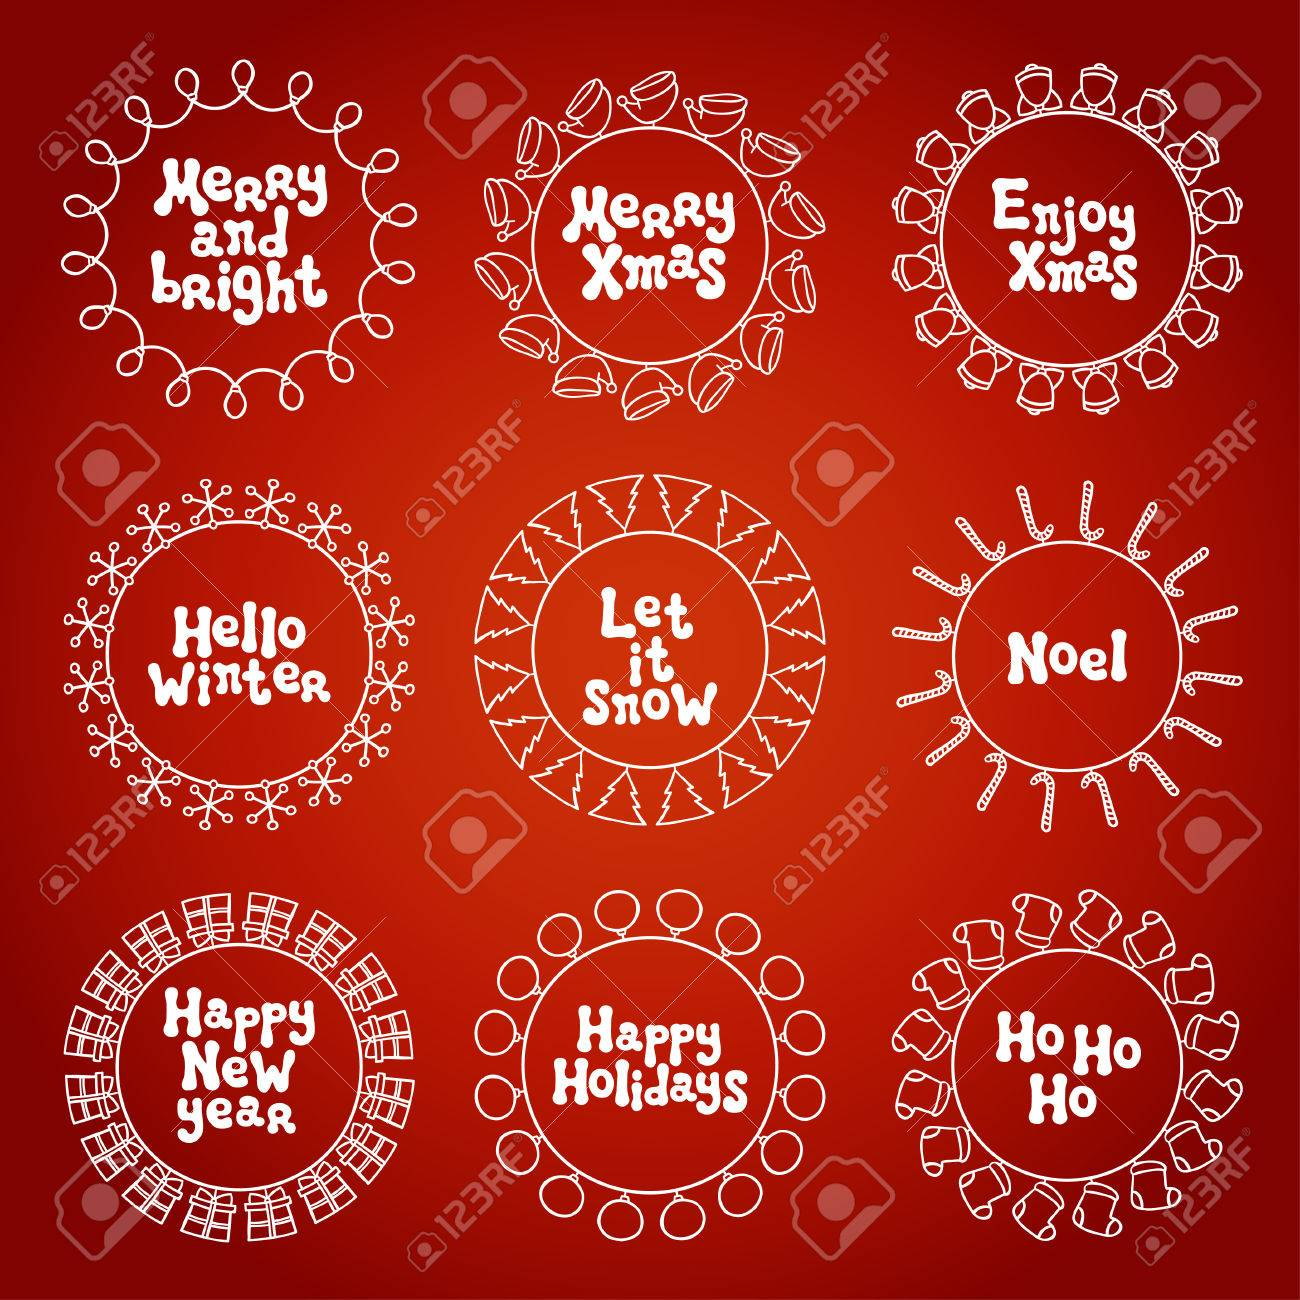 Merry Christmas New Year Wishes Labels Stickers And Badges Hand